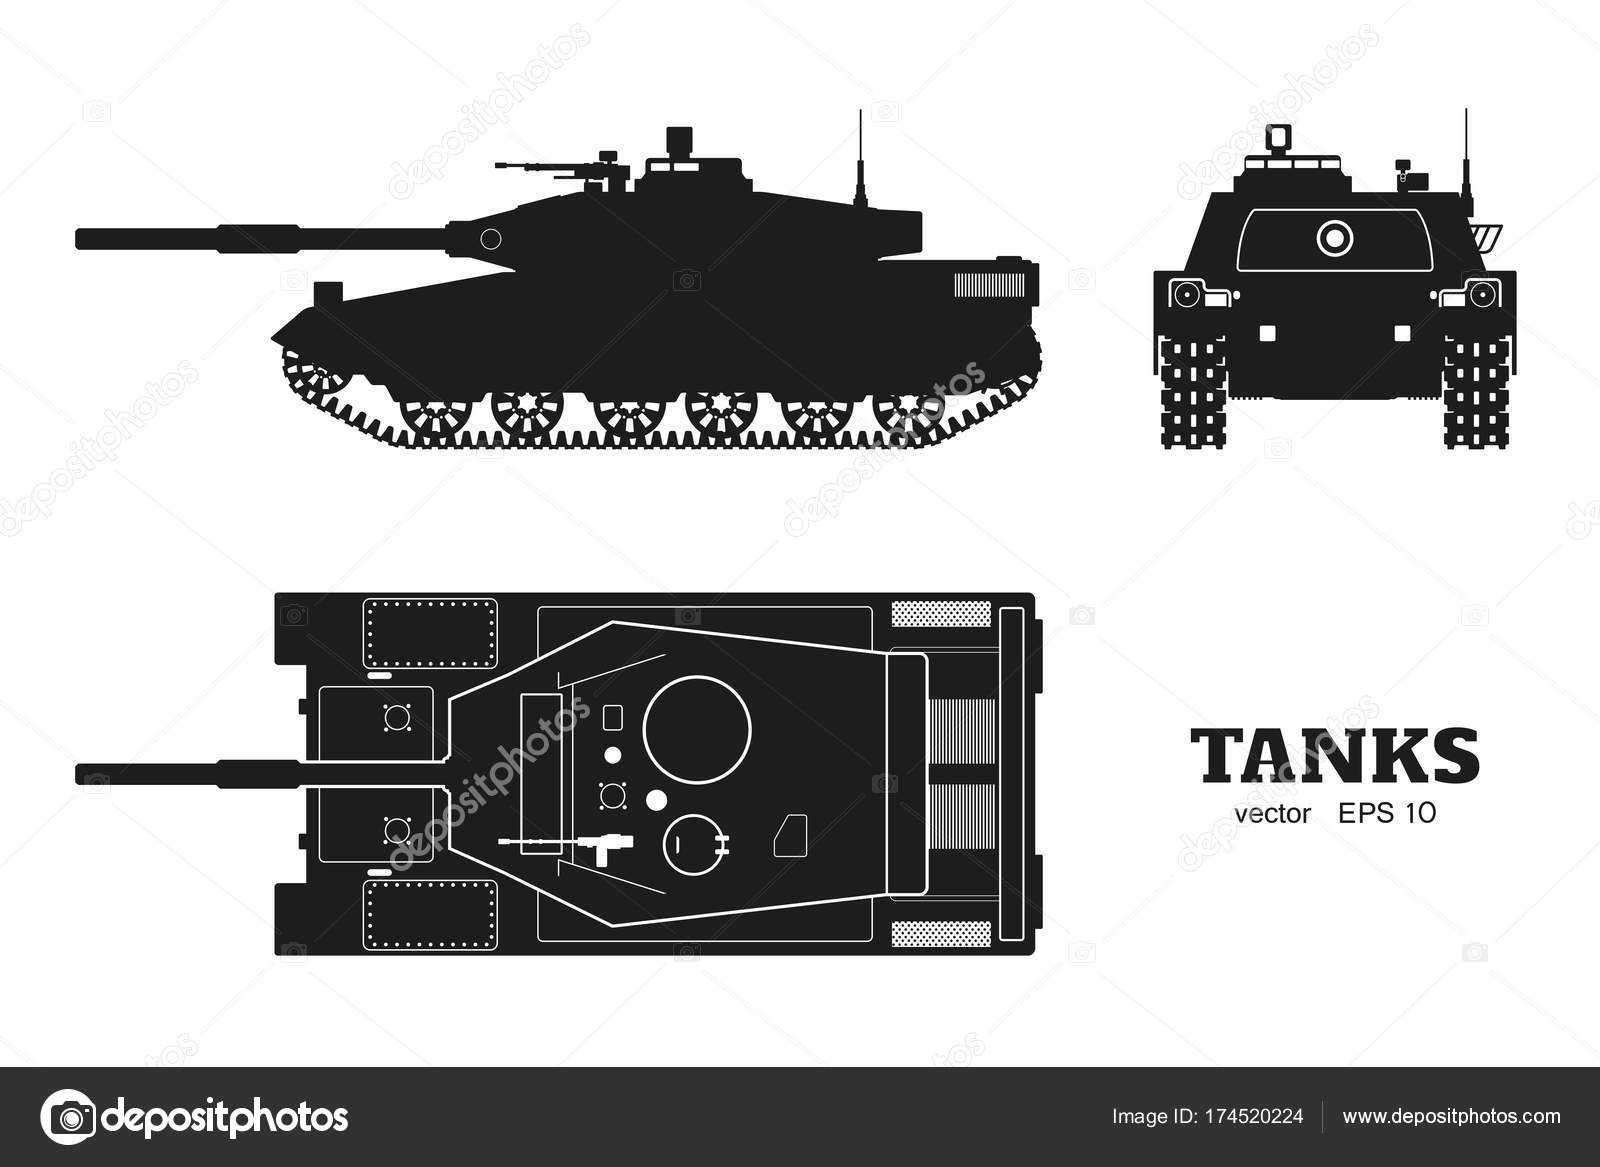 Silhouette of realistic tank blueprint armored car on white silhouette of realistic tank blueprint armored car on white background top side front views army weapon war camouflage transport vector illustration malvernweather Images